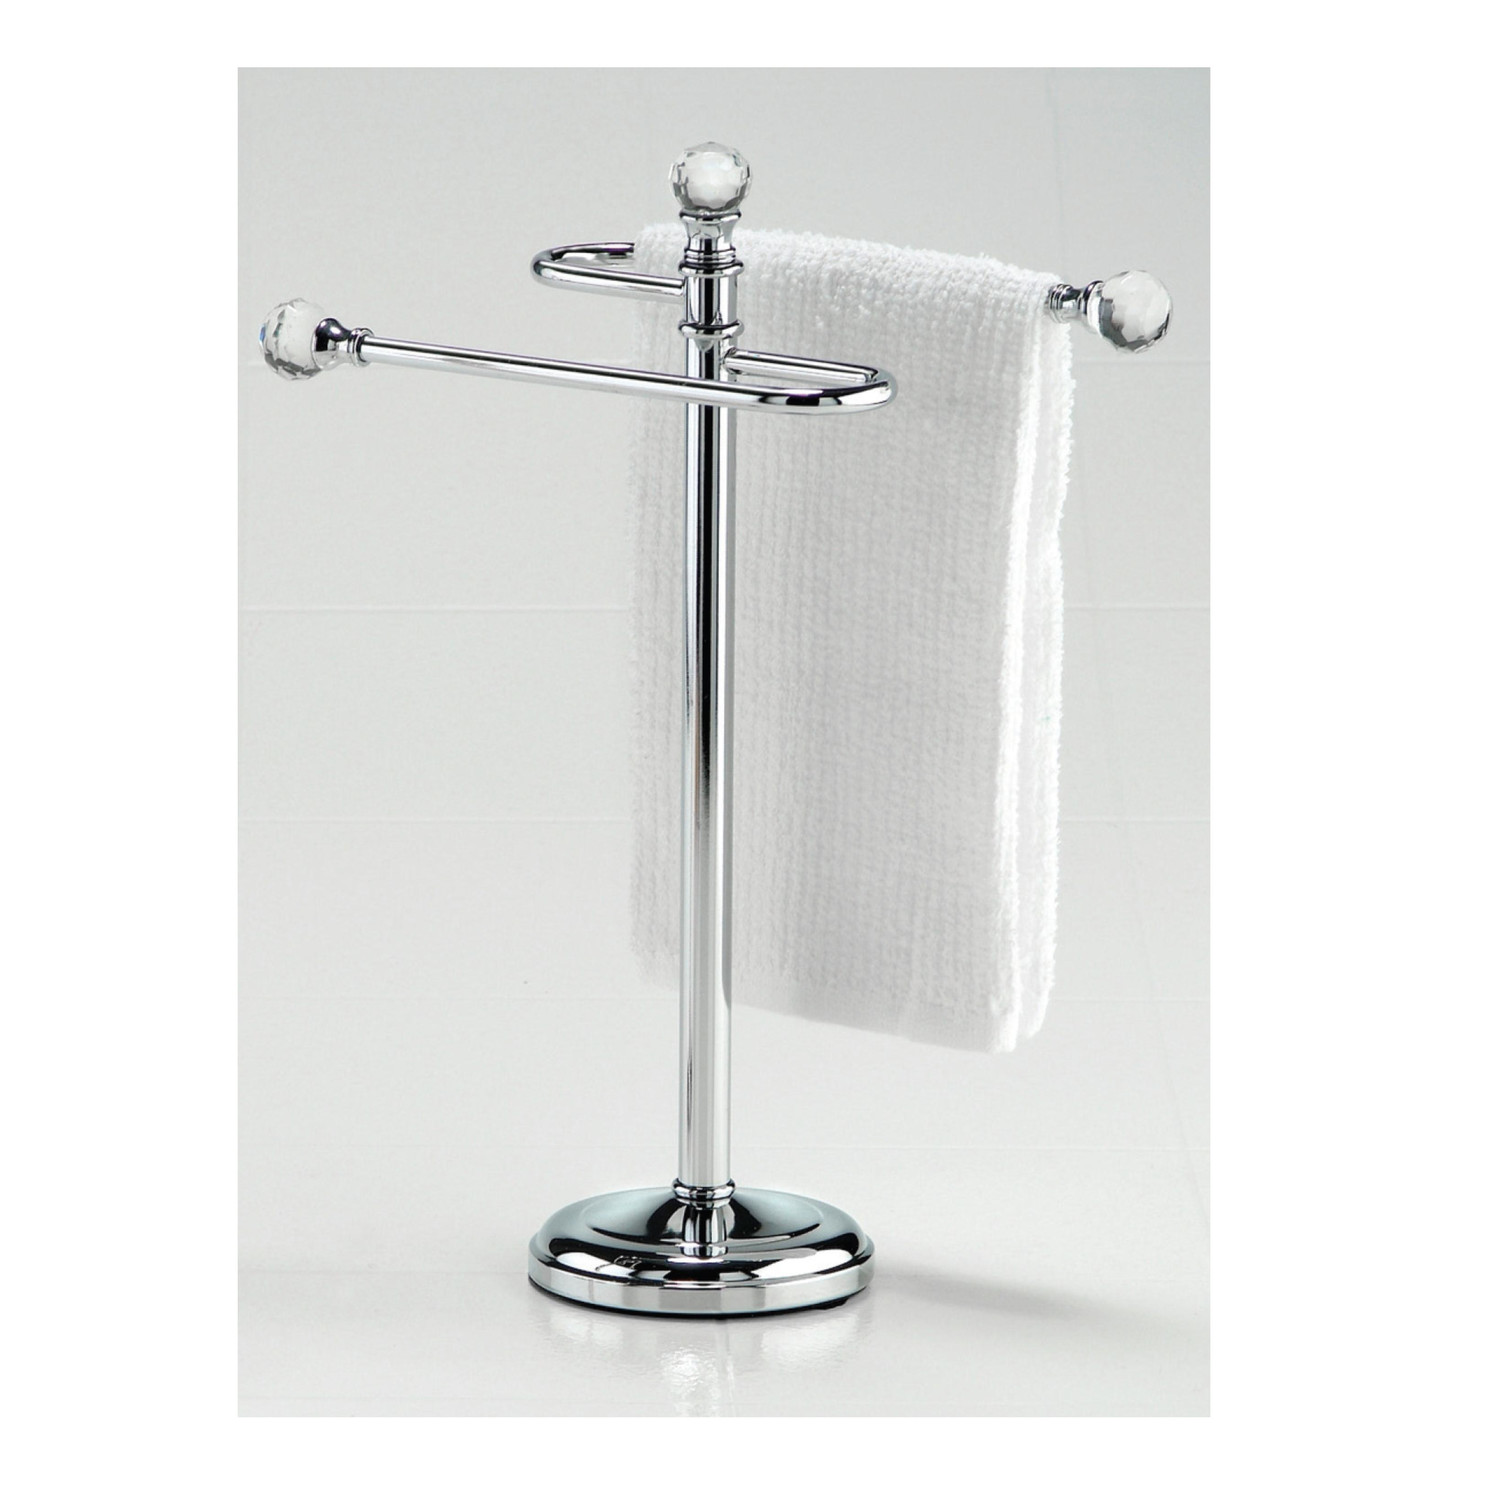 Chrome Hand Towel Stand Inside Hand Towel Stand Made Of Chrome With Two Units Rail Popular Items Towel Stand Homesfeed